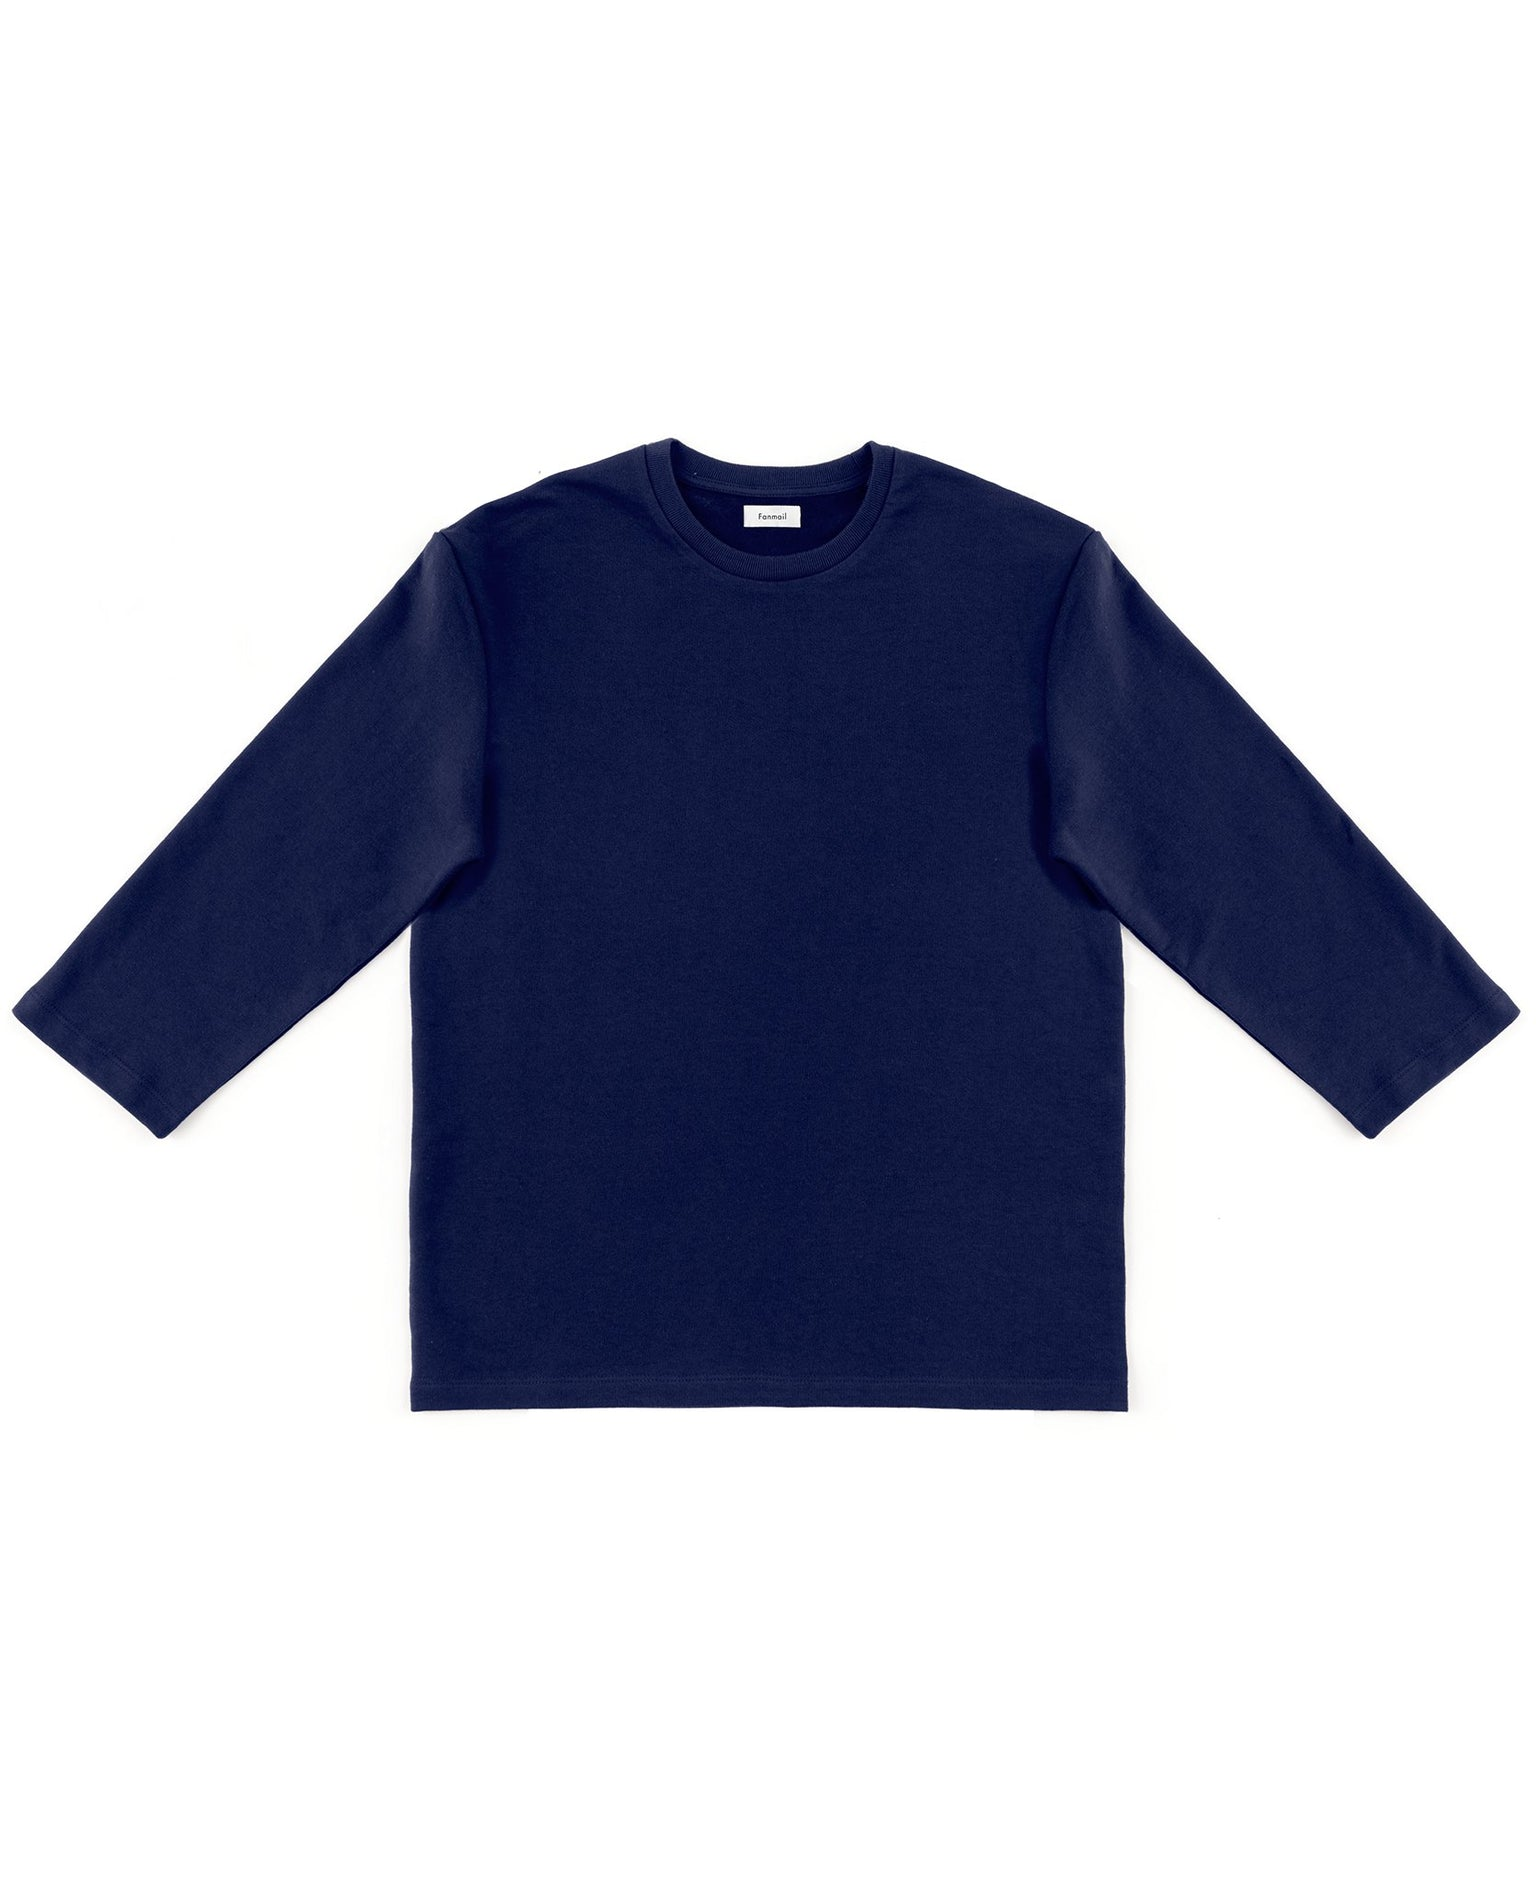 3/4 sweat / navy